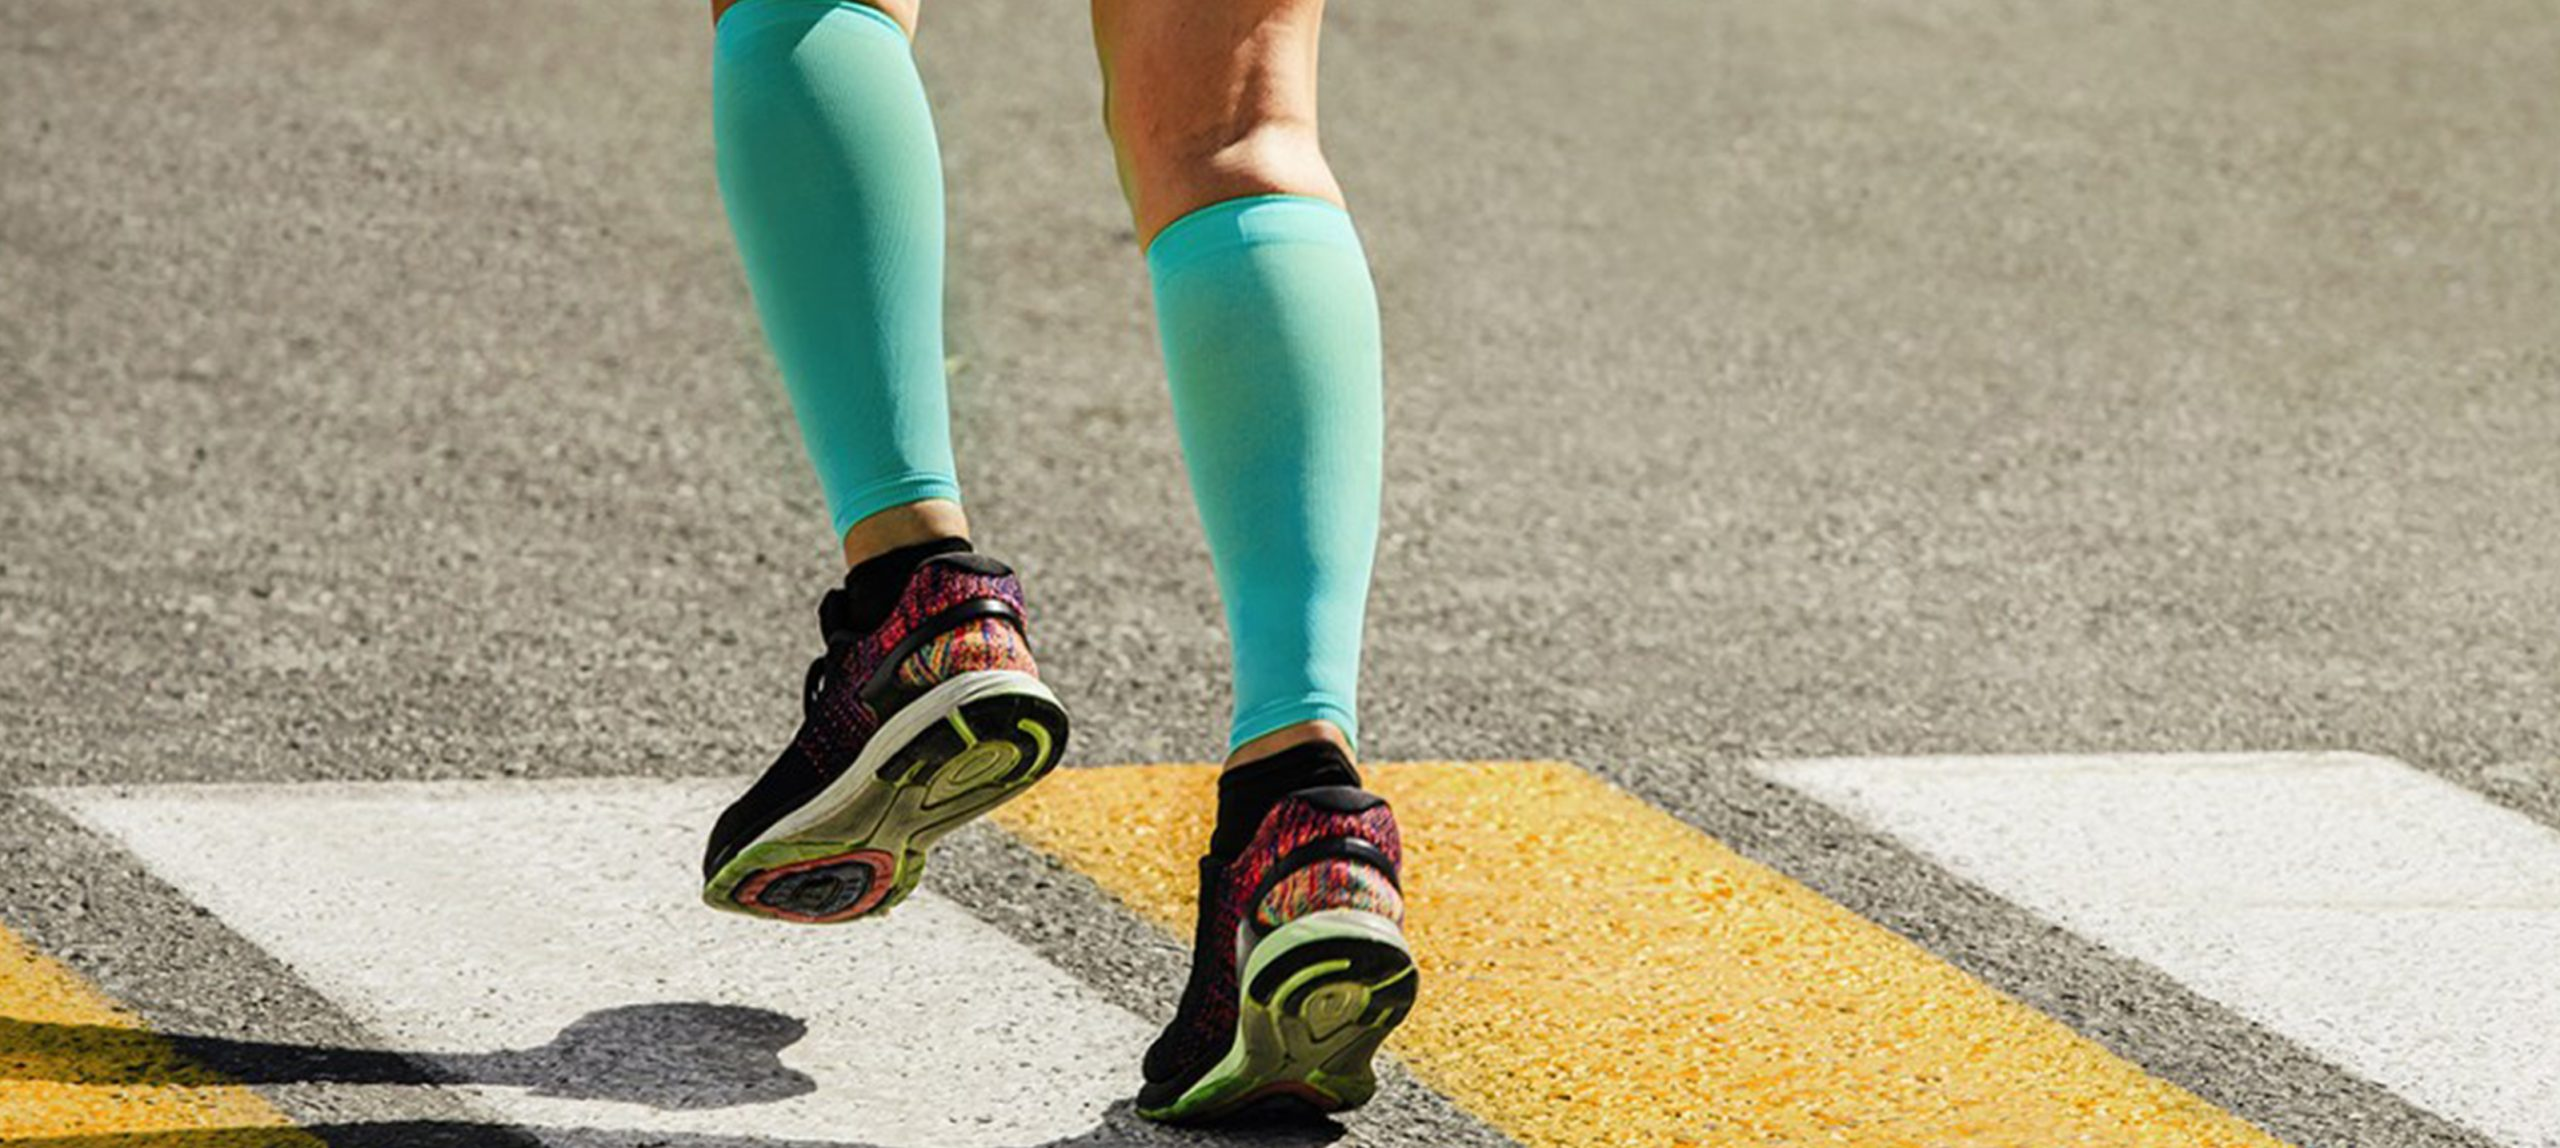 compression socks benefits for runners